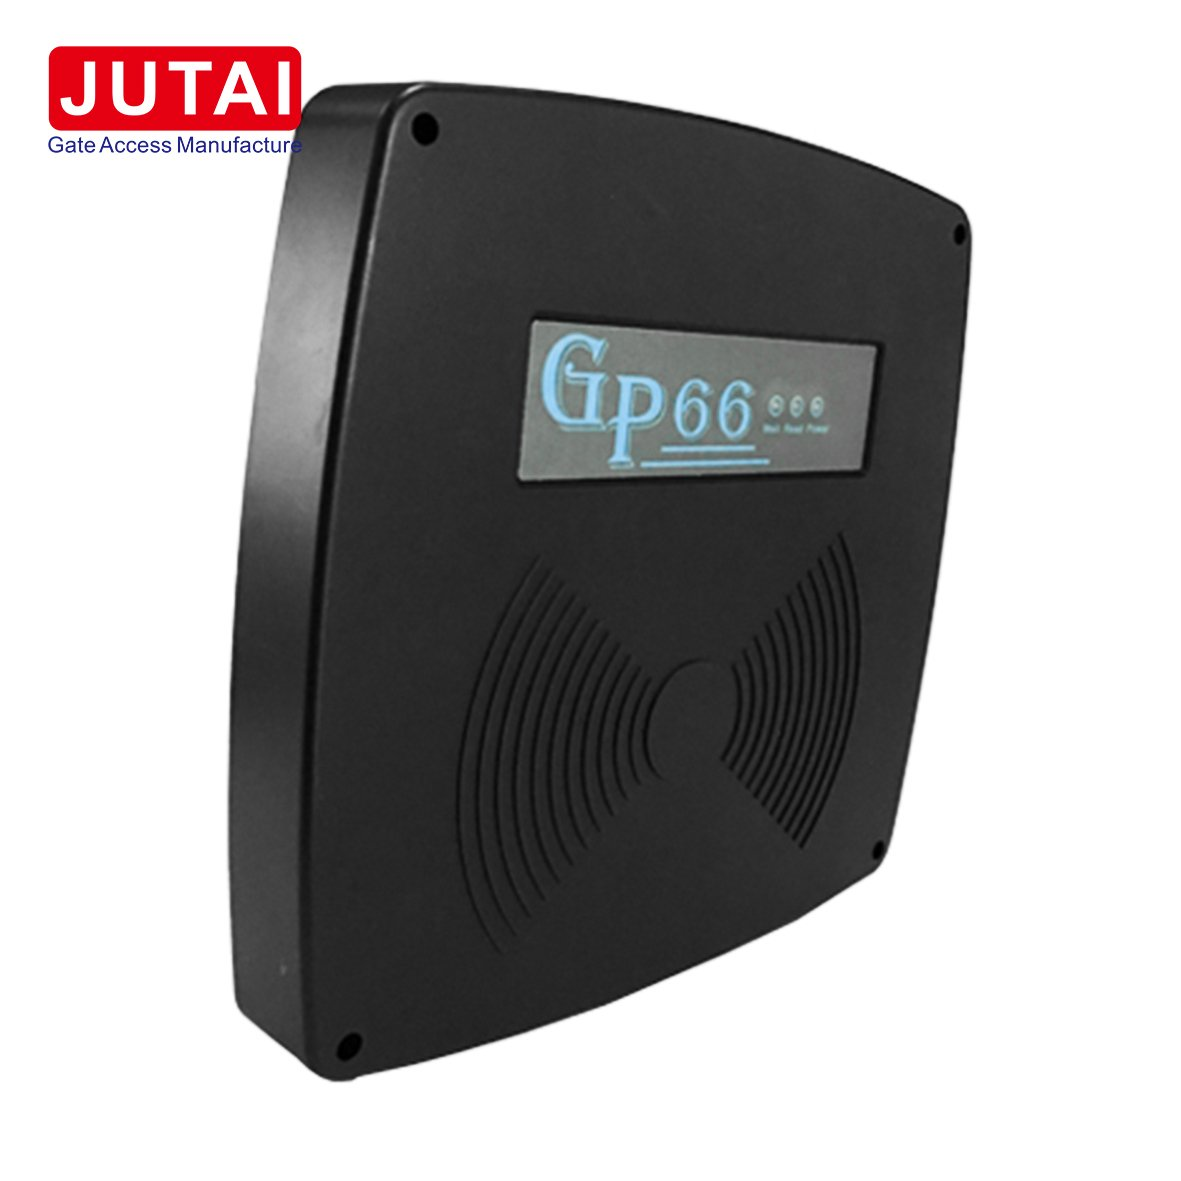 JUTAI 125KHZ proximity long range reader for gate access